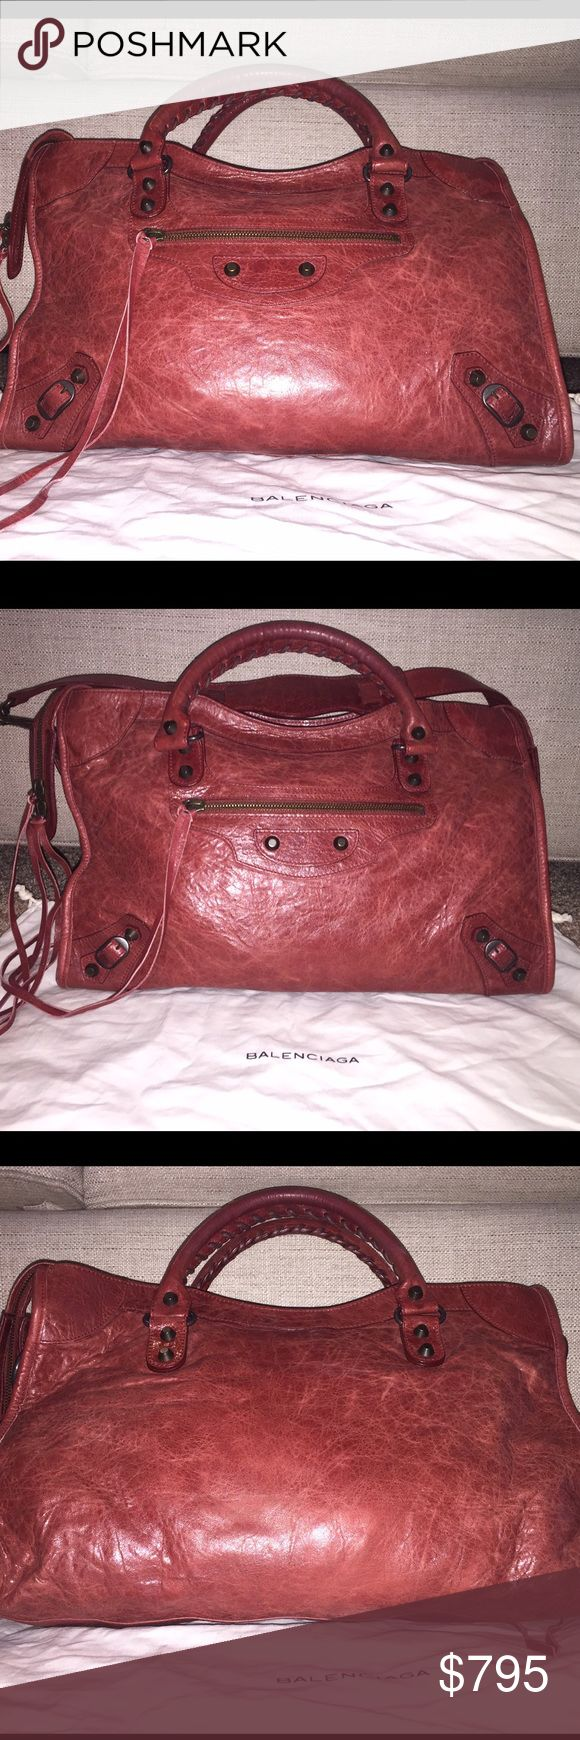 Balenciaga Classic City Sanguine Gorgeous LIKE NEW Balenciaga Classic City in Sanguine (pale brick red color).  Carefully used only a few times! I don't have the opportunity to switch out my purses as often as I'd like, so this baby has been stored in its dust bag waiting for some love. Don't let this unicorn get away - and for a great bargain!  Features:  Hand stitched handles Removable shoulder strap Aged brass hardware Front zip pocket Interior zip pocket with Balenciaga engraved plaque…